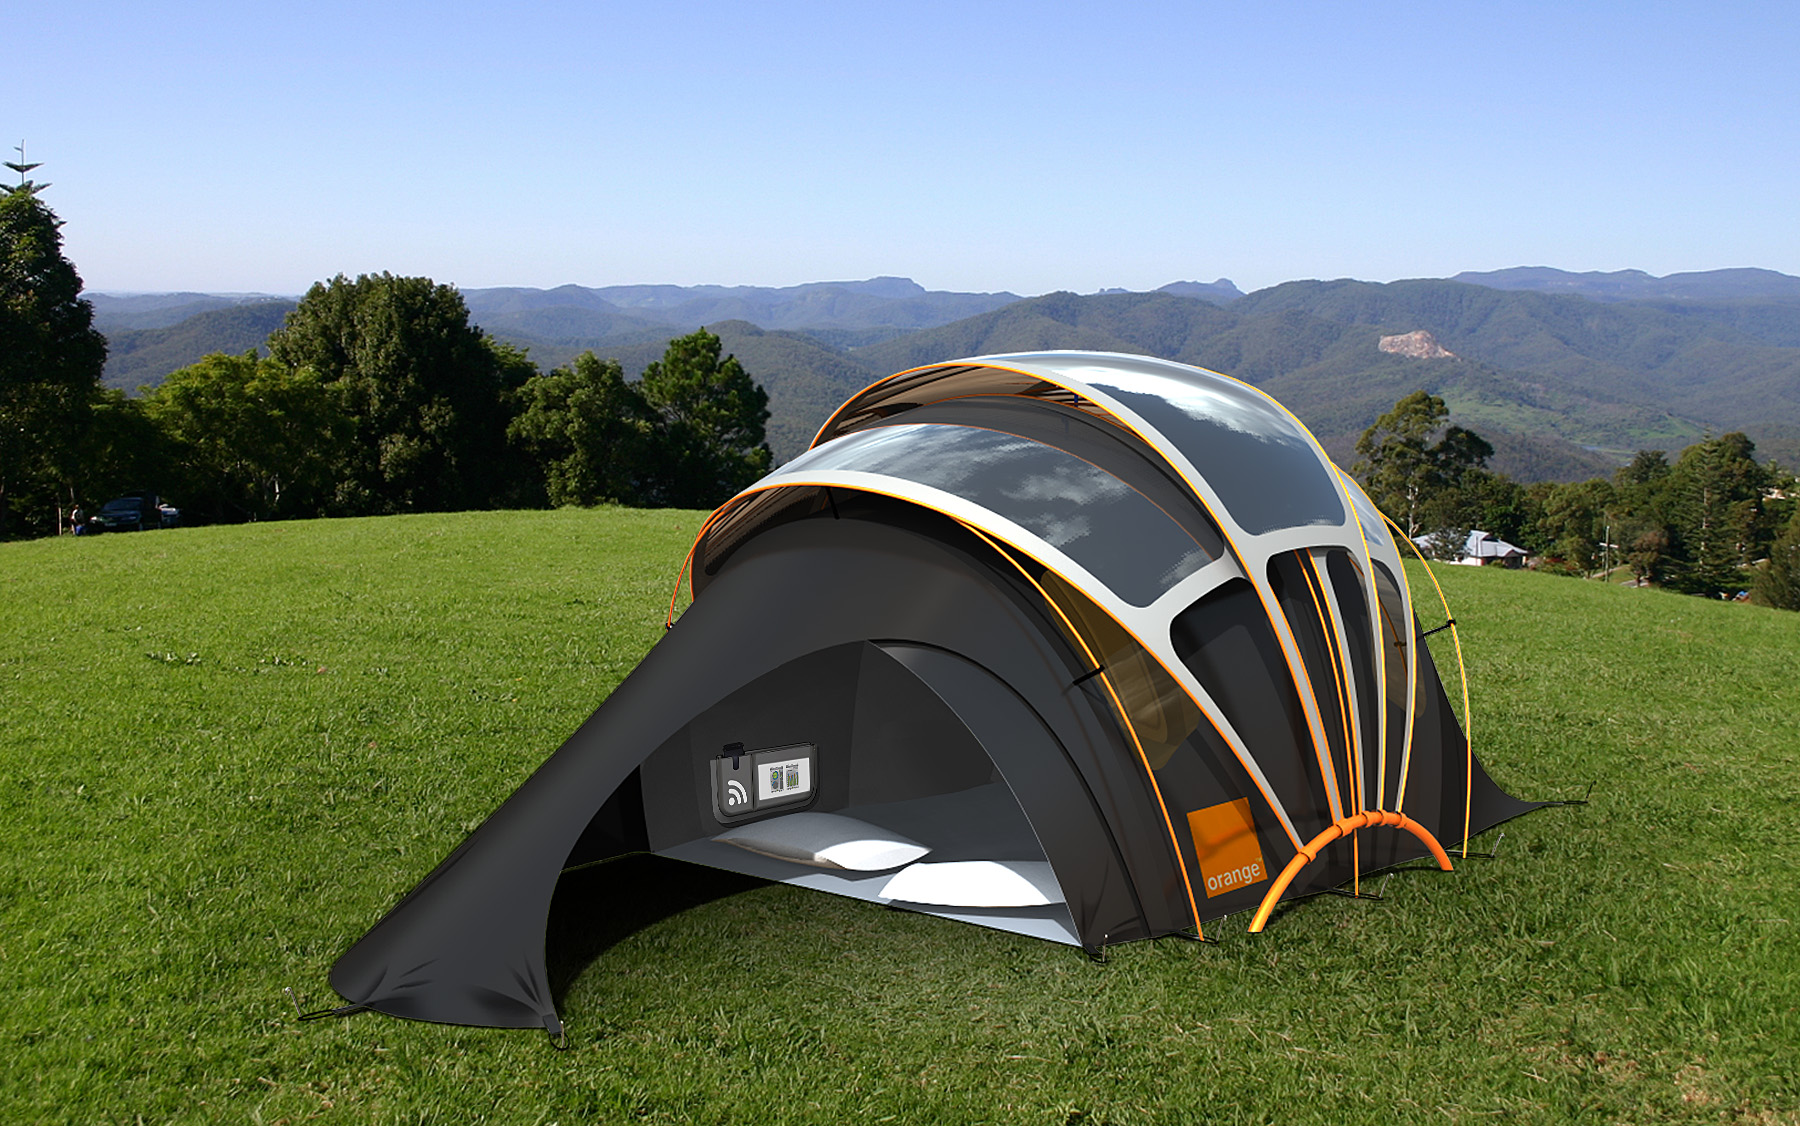 This 4-person solar tent is one of the ultimate green c&ing gadgets! Solar cells built into the tent gather energy during the day so you can charge ... : best waterproof tents - memphite.com